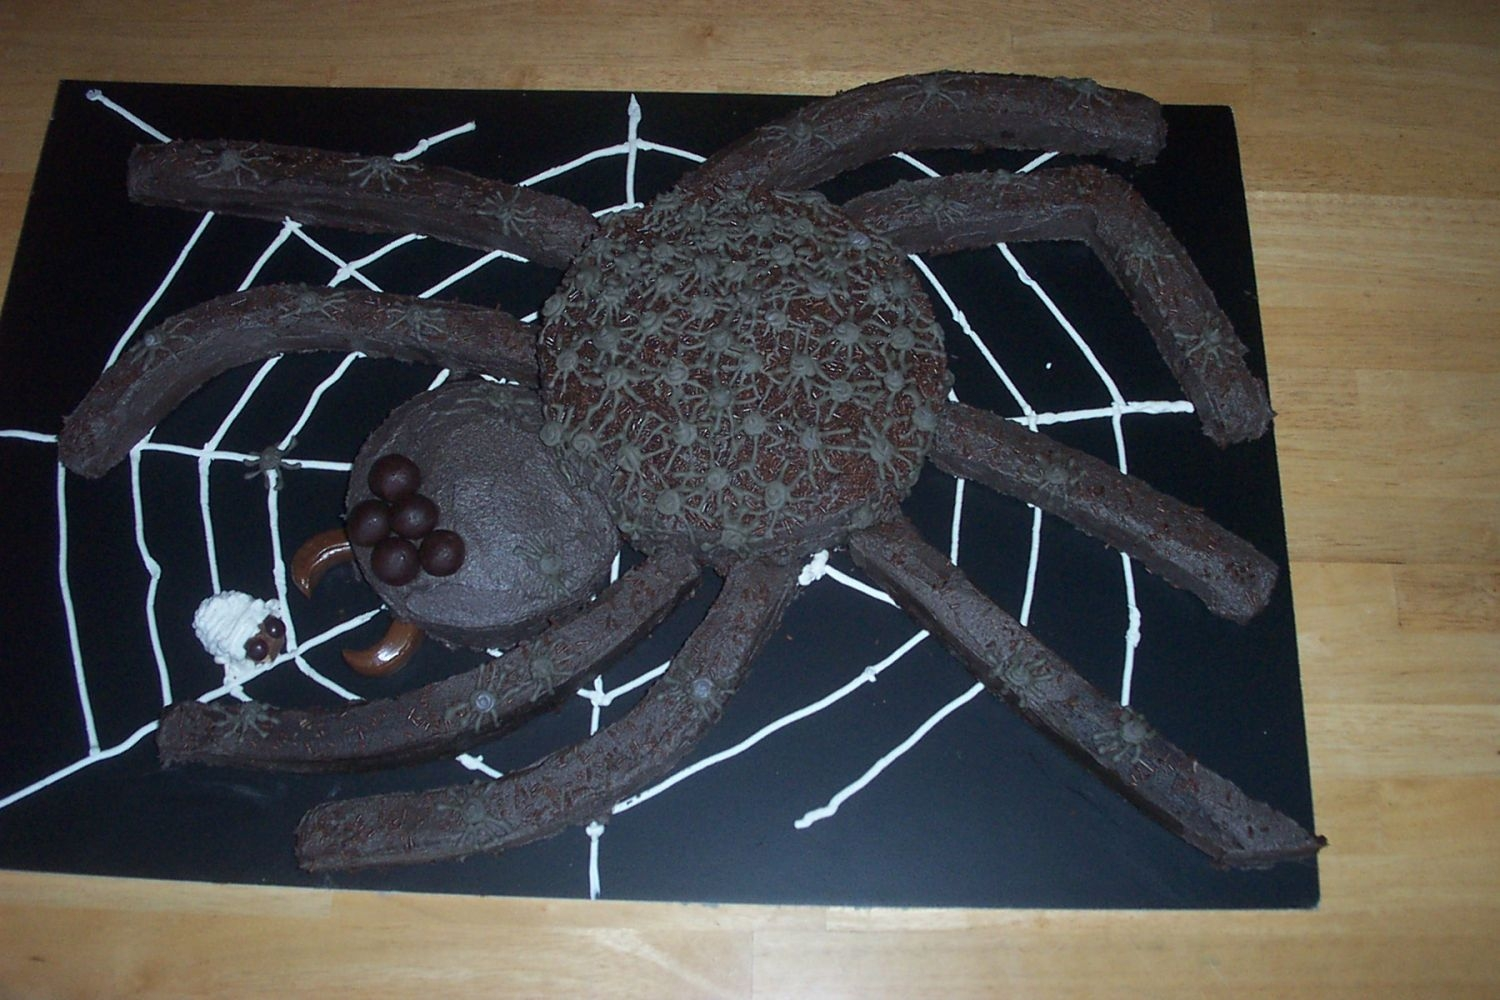 Spider Cake  This was great fun to make. The legs were sliced from a 13x9 sheet, the body and head were rounds,the eyeballs and fangs were homemade...